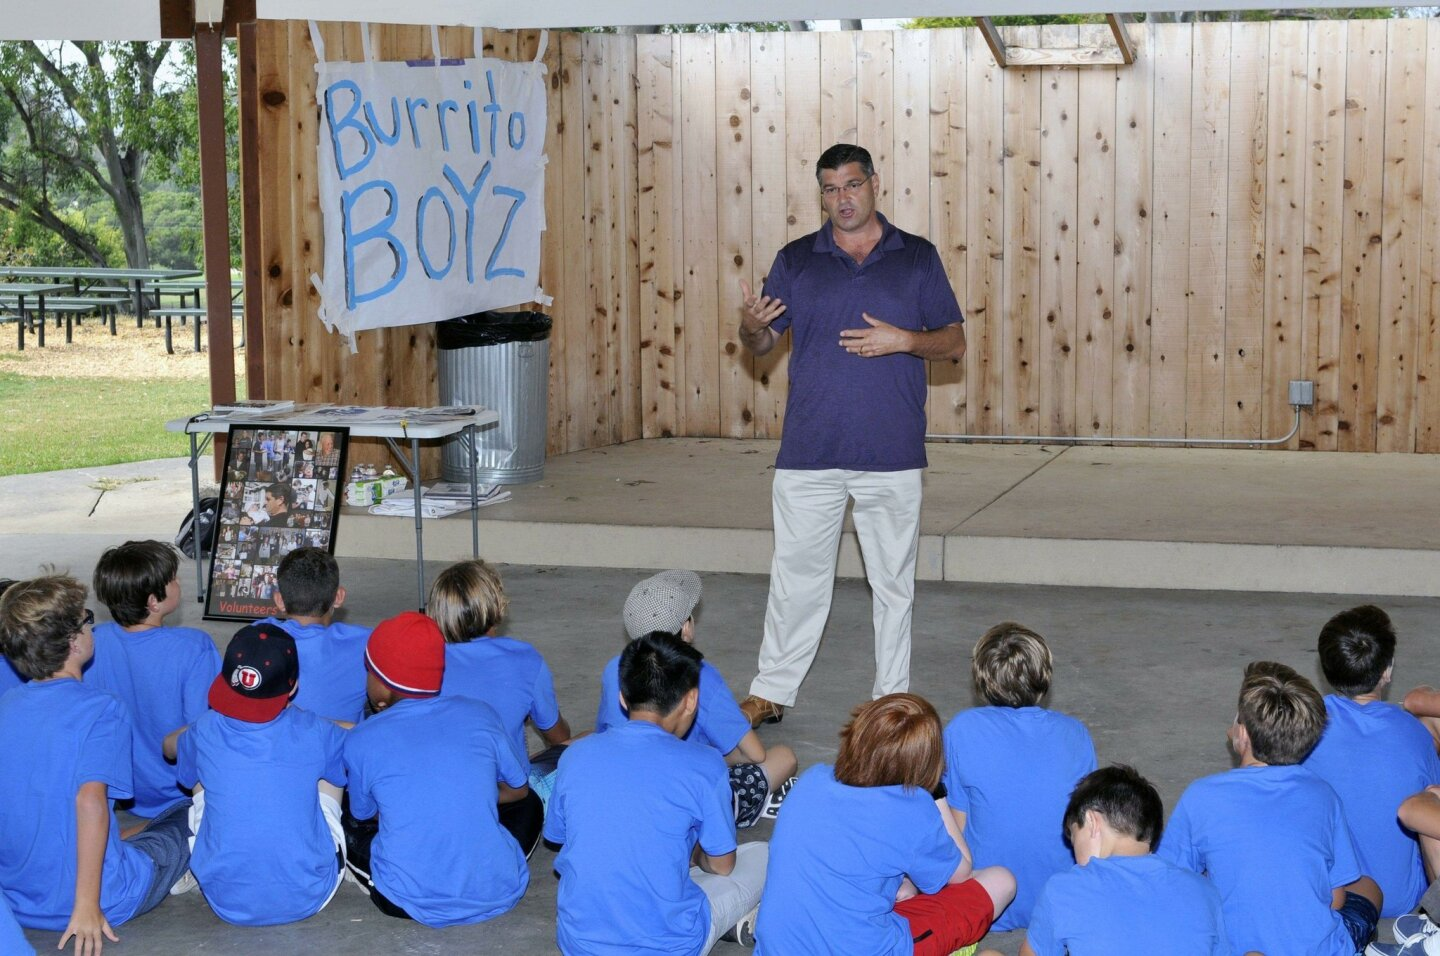 Burrito Boyz President & Founder Michael Johnson shares his experience with feeding the homeless (www.BurritoBoyz.org)